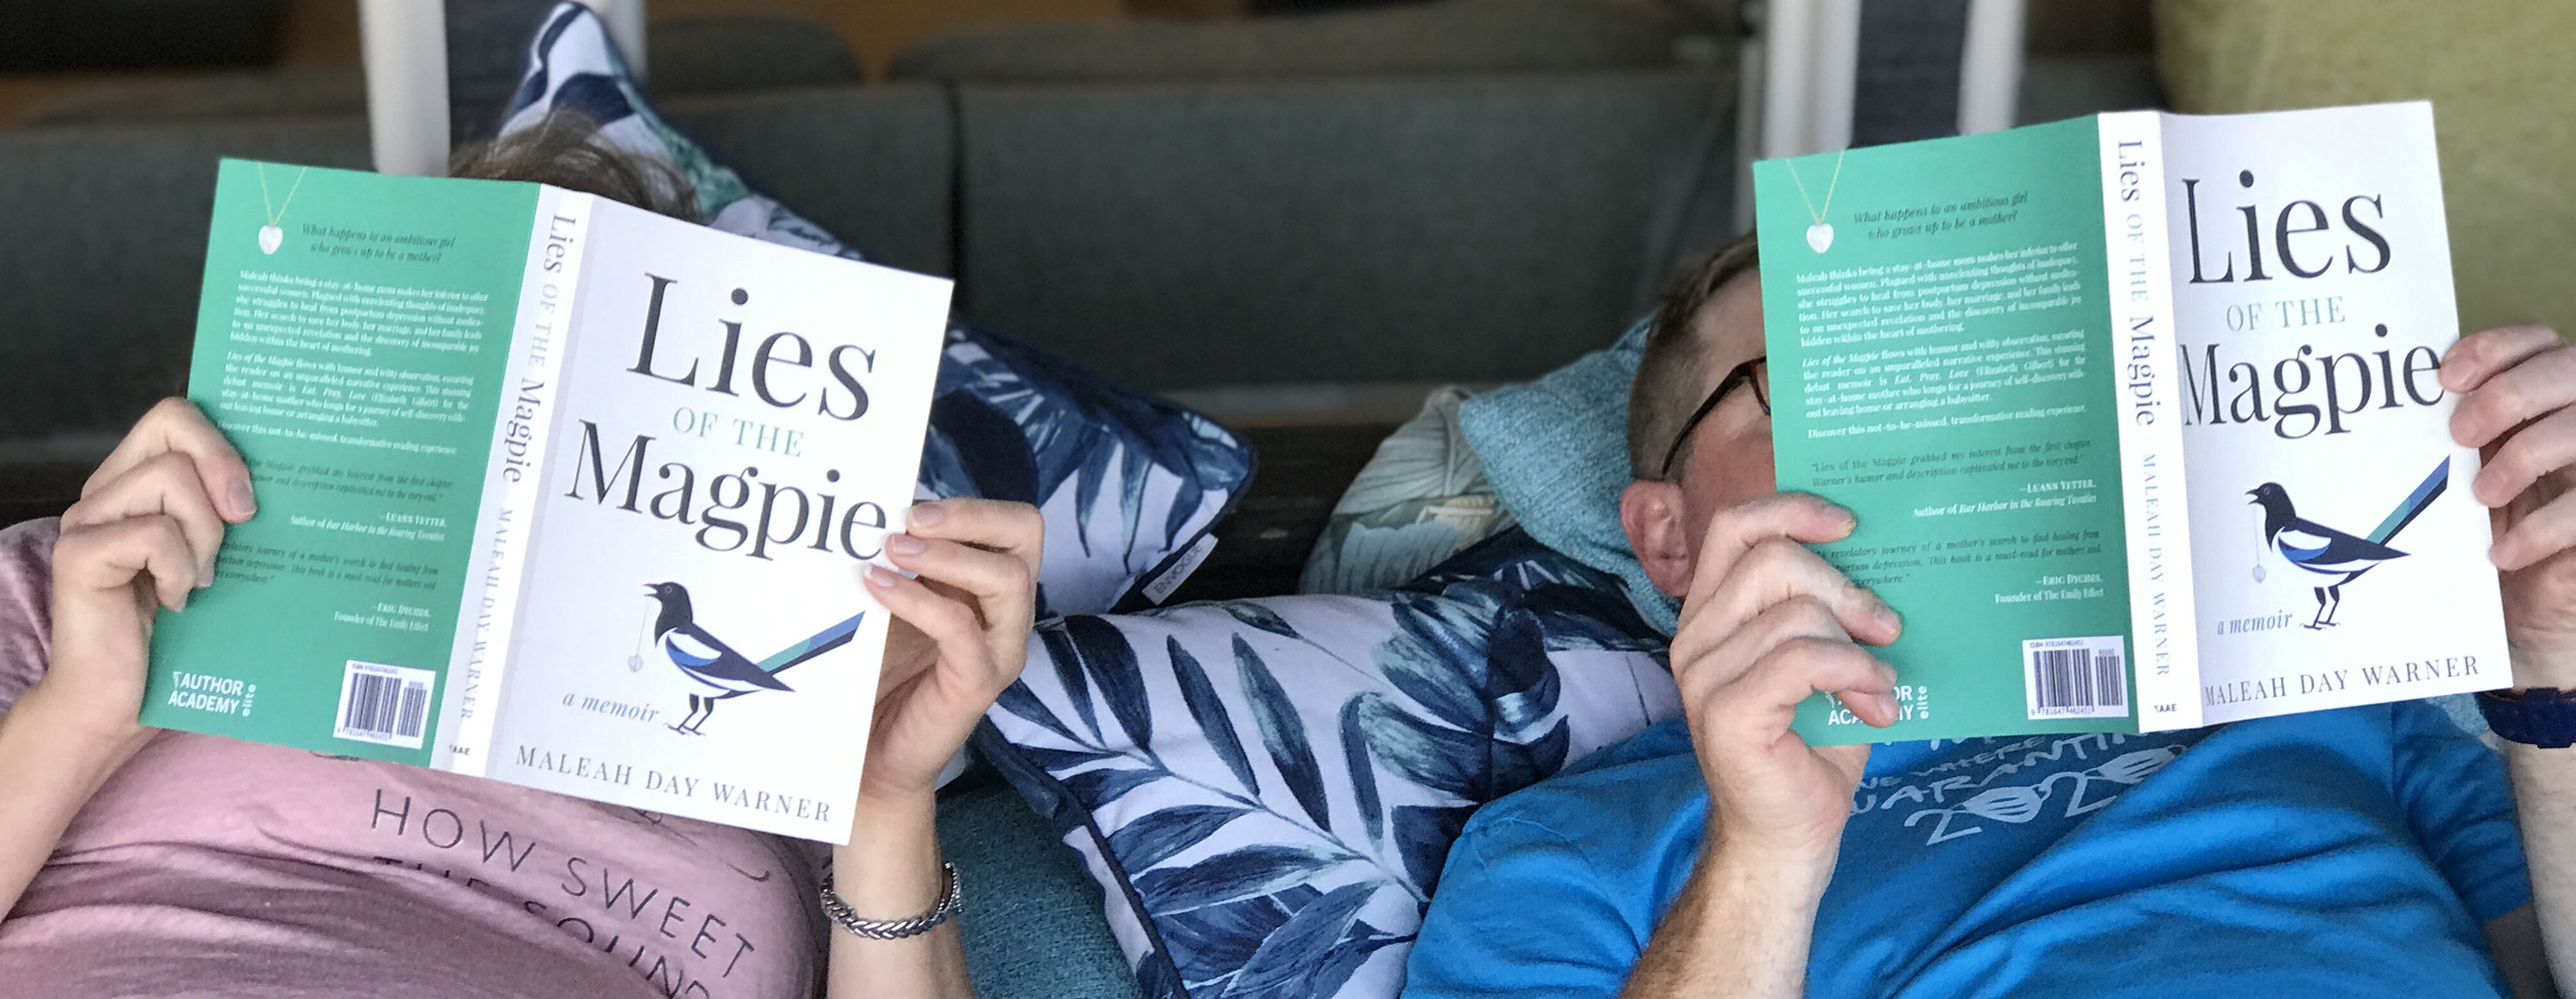 Husband and Wife reading Lies of the Magpie